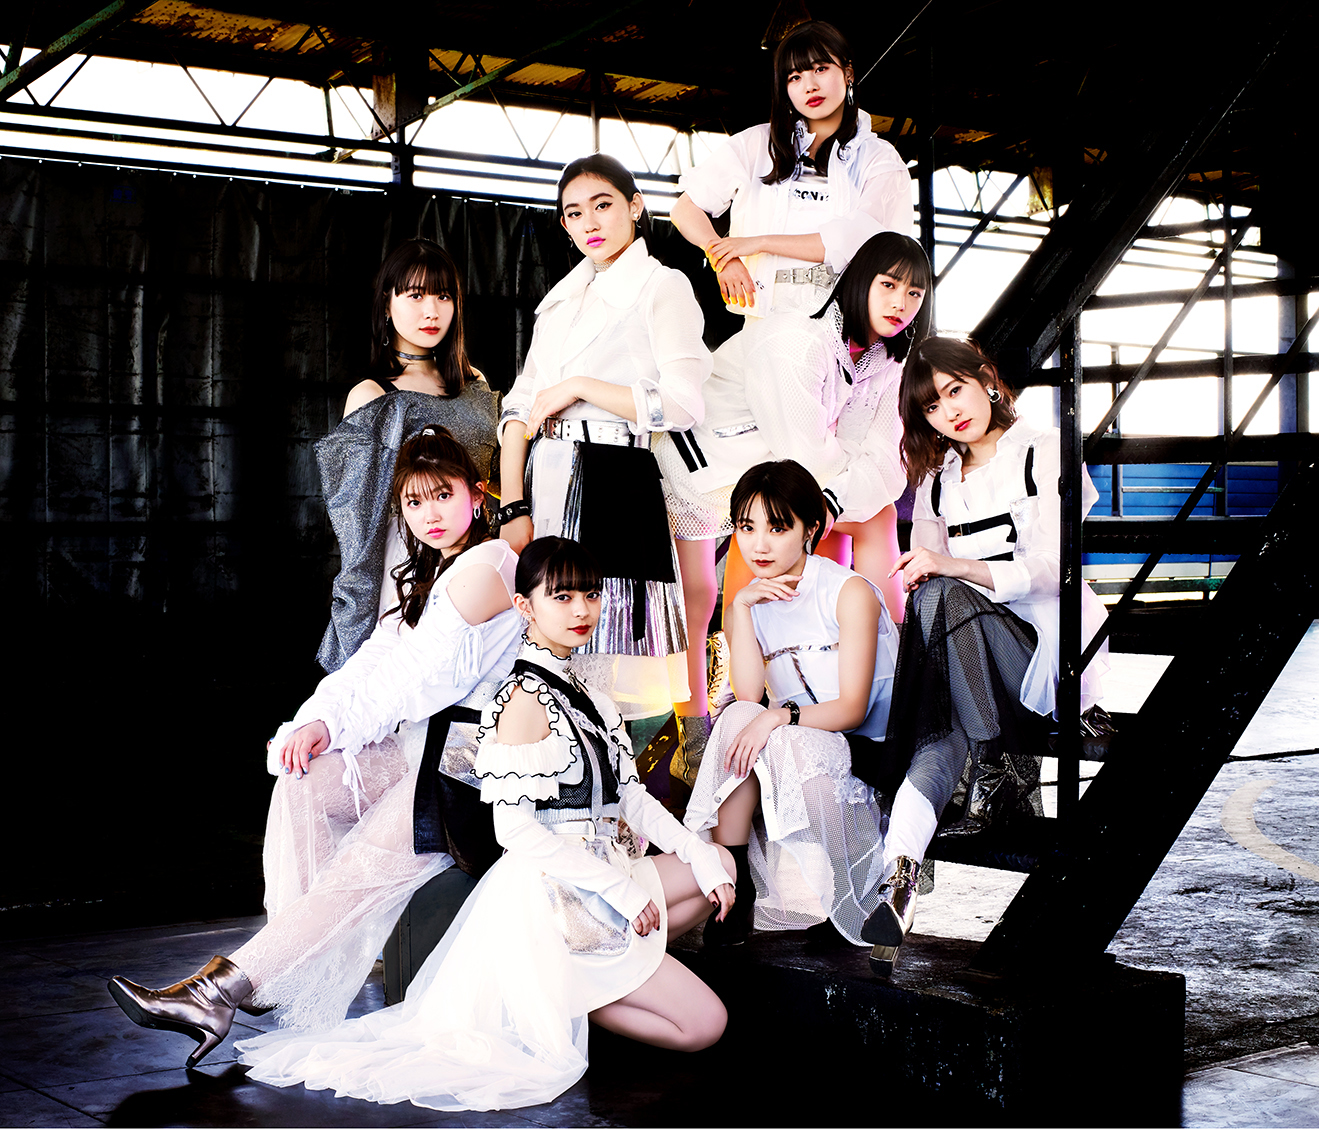 ANGERME to announce their new single release on YouTube!